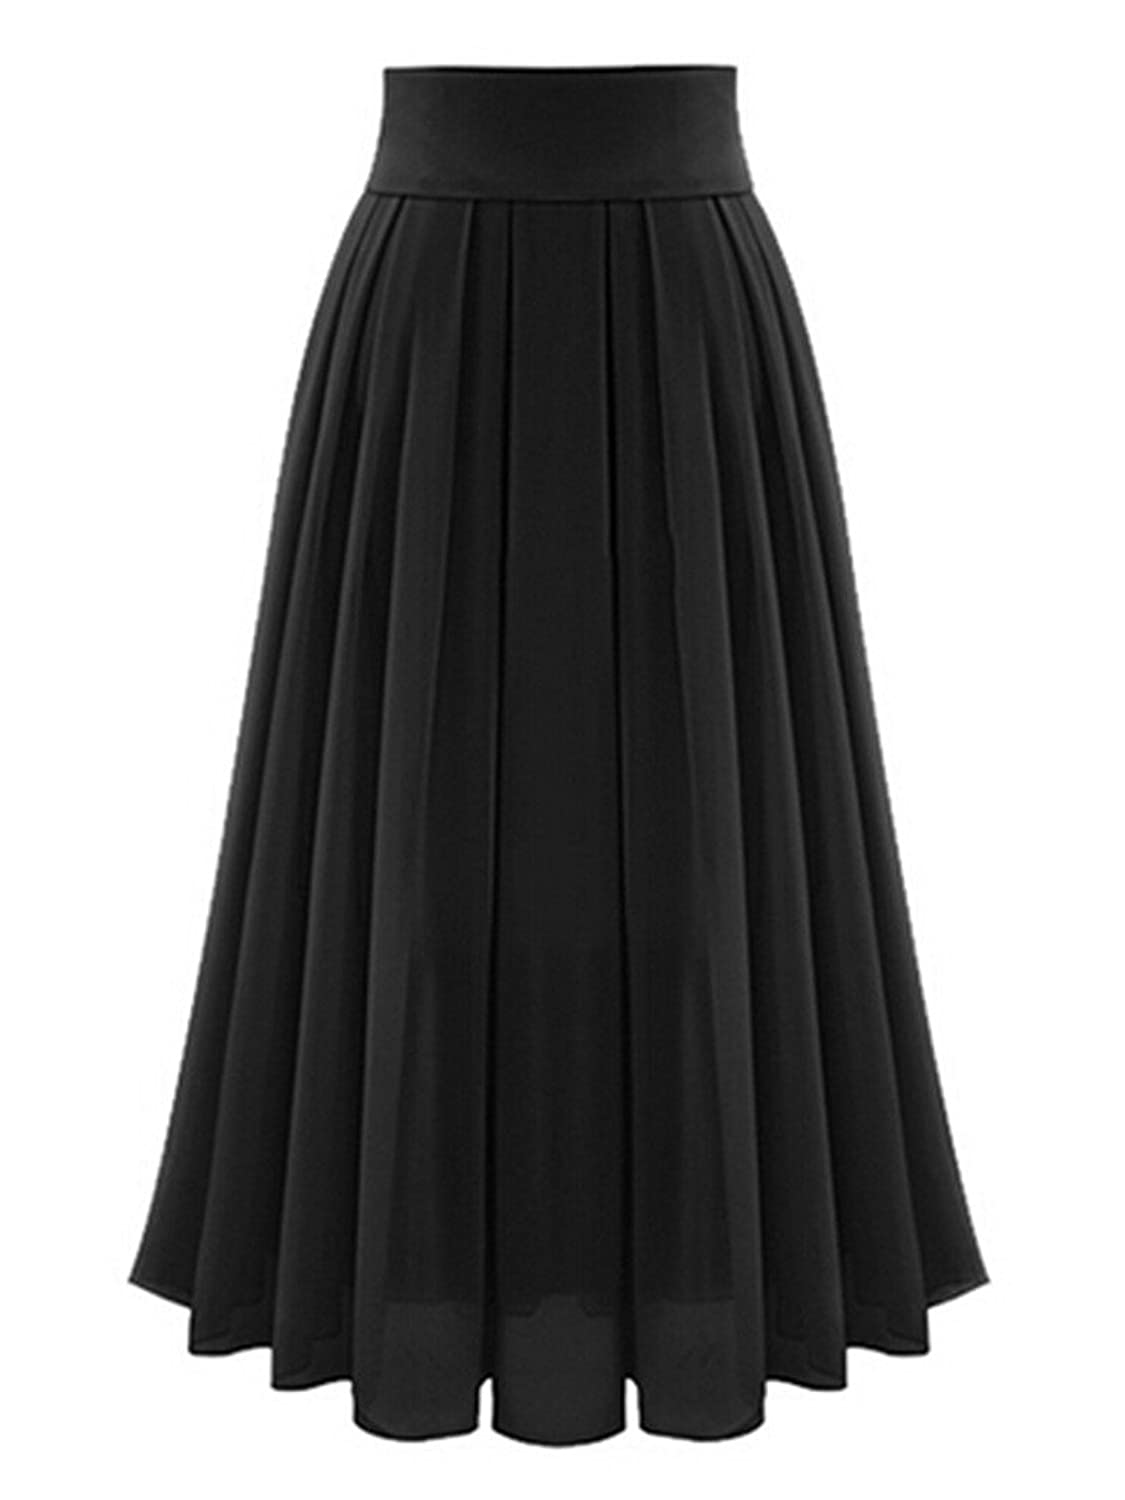 Victorian Costumes: Dresses, Saloon Girls, Southern Belle, Witch PERSUN Womens High Waist Chiffon Mesh Tulle Layer Pleated Party Midi Skirt $19.99 AT vintagedancer.com